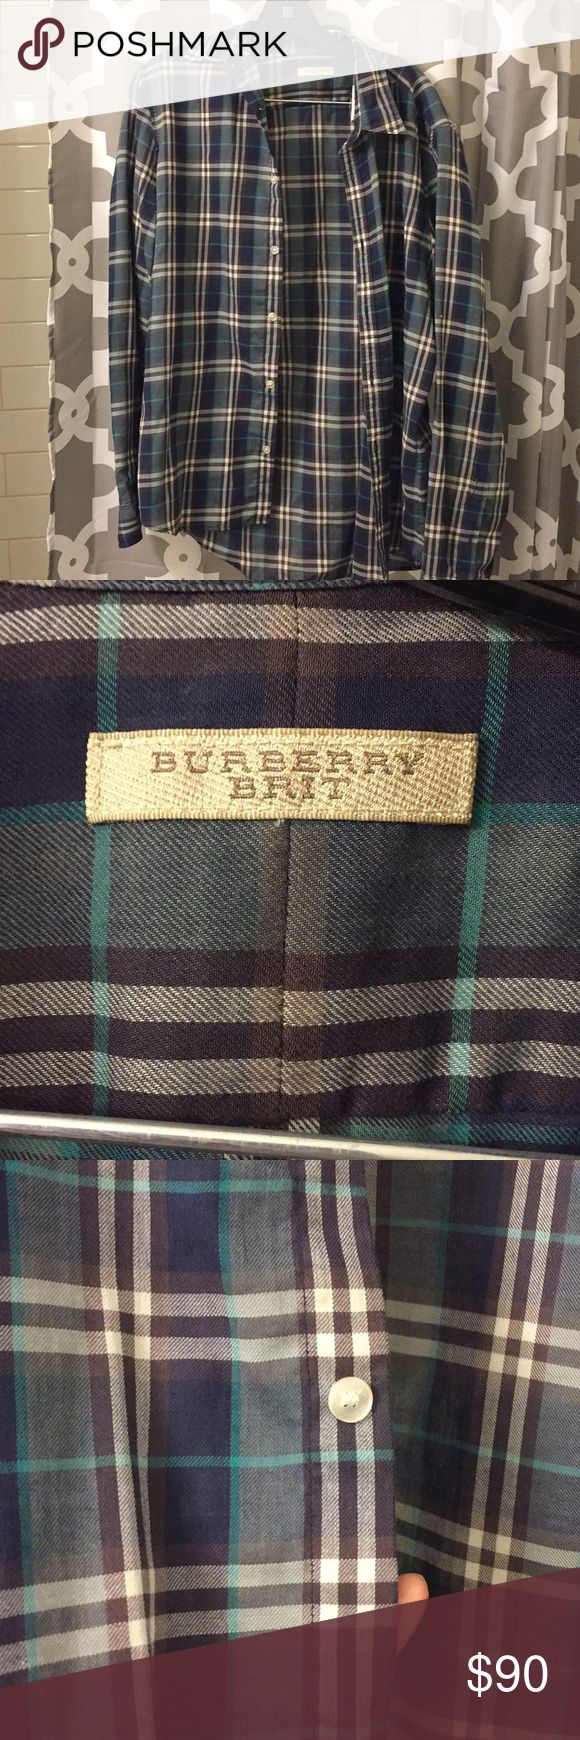 Burberry Brit men's size large button down Burberry Brit men's size large button down, excellent condition, too small on my bf Burberry Shirts Dress Shirts